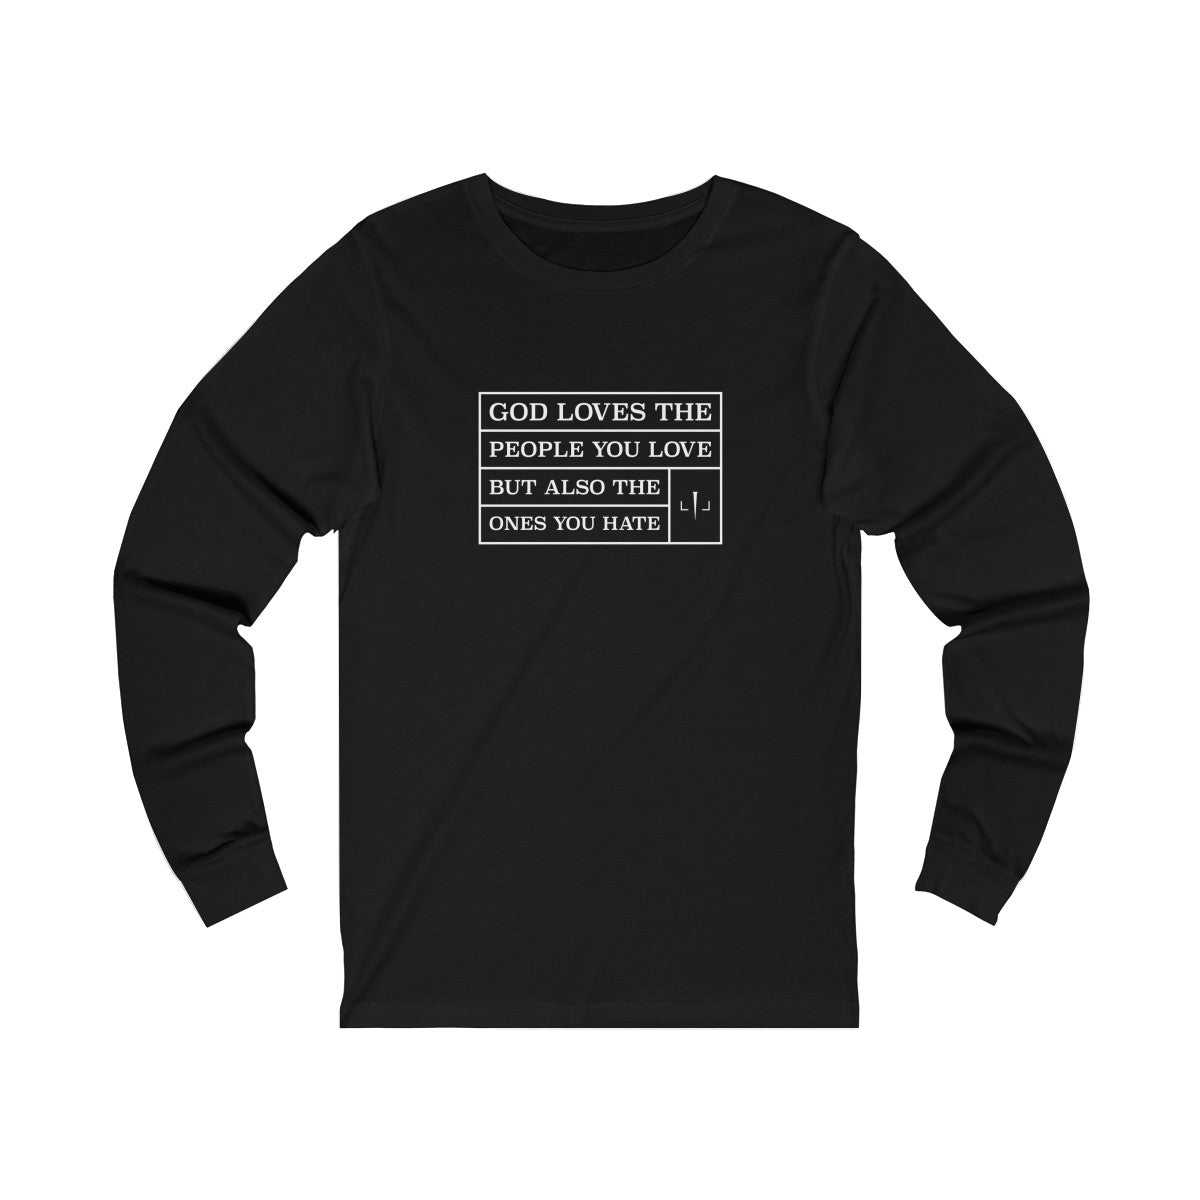 God Loves The People You Love But Also The Ones You Hate Unisex Jersey Long Sleeve Tee